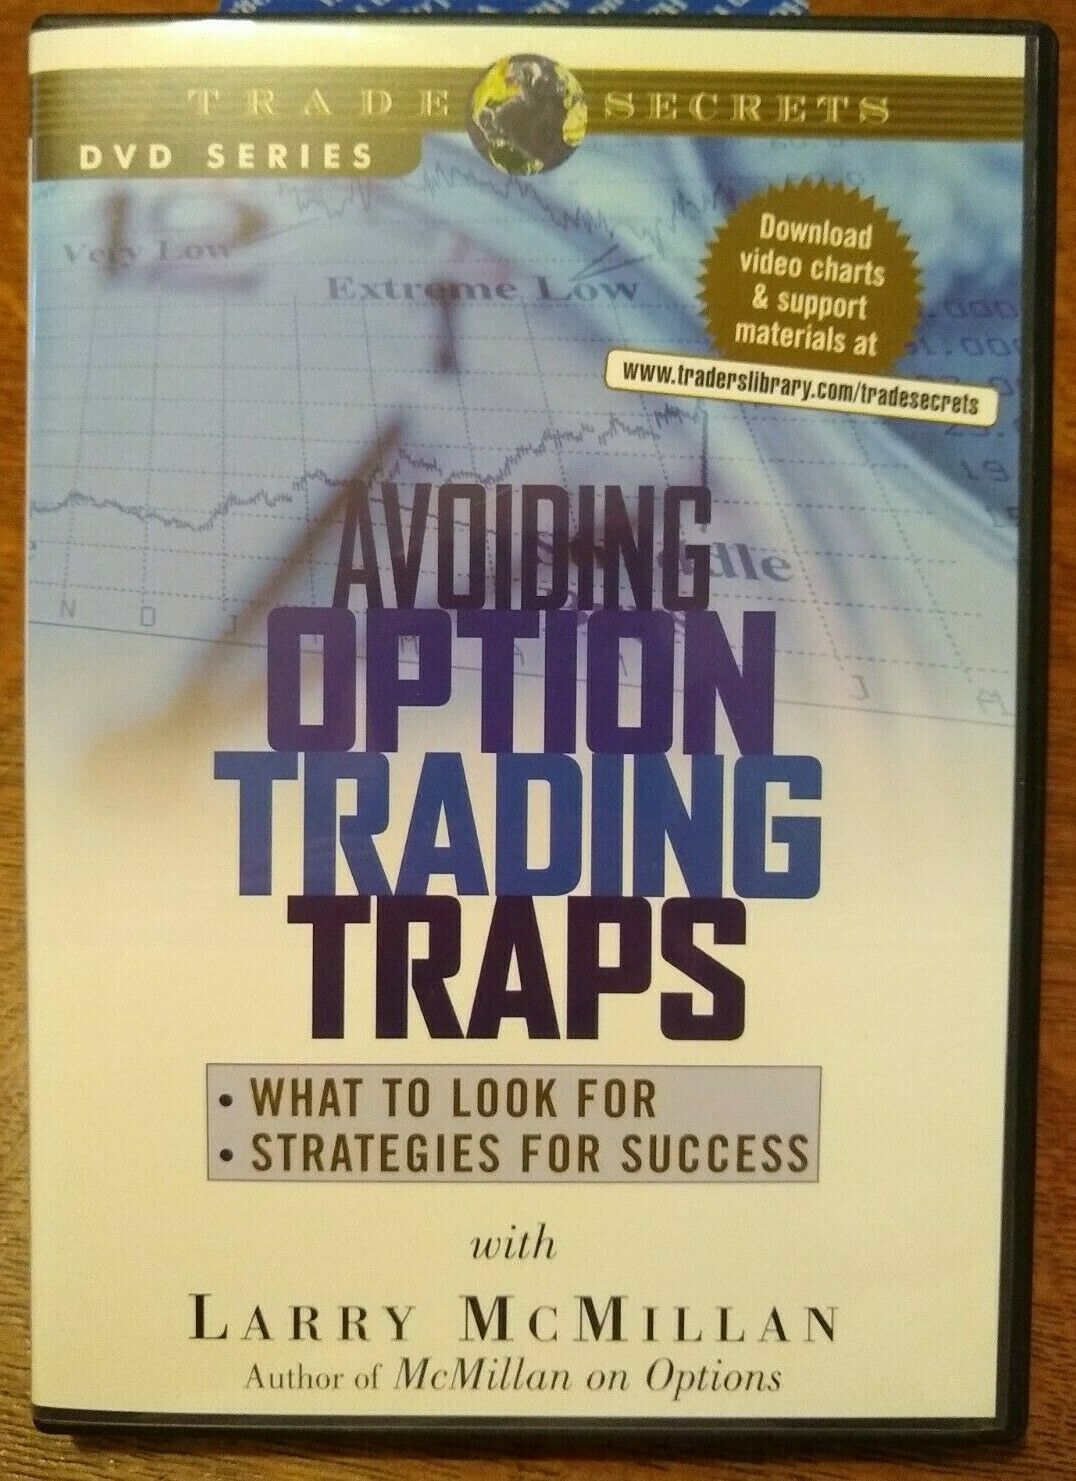 Avoiding Option Trading Traps DVD Strategy Put Call Risk Stock Bond Equity Trade